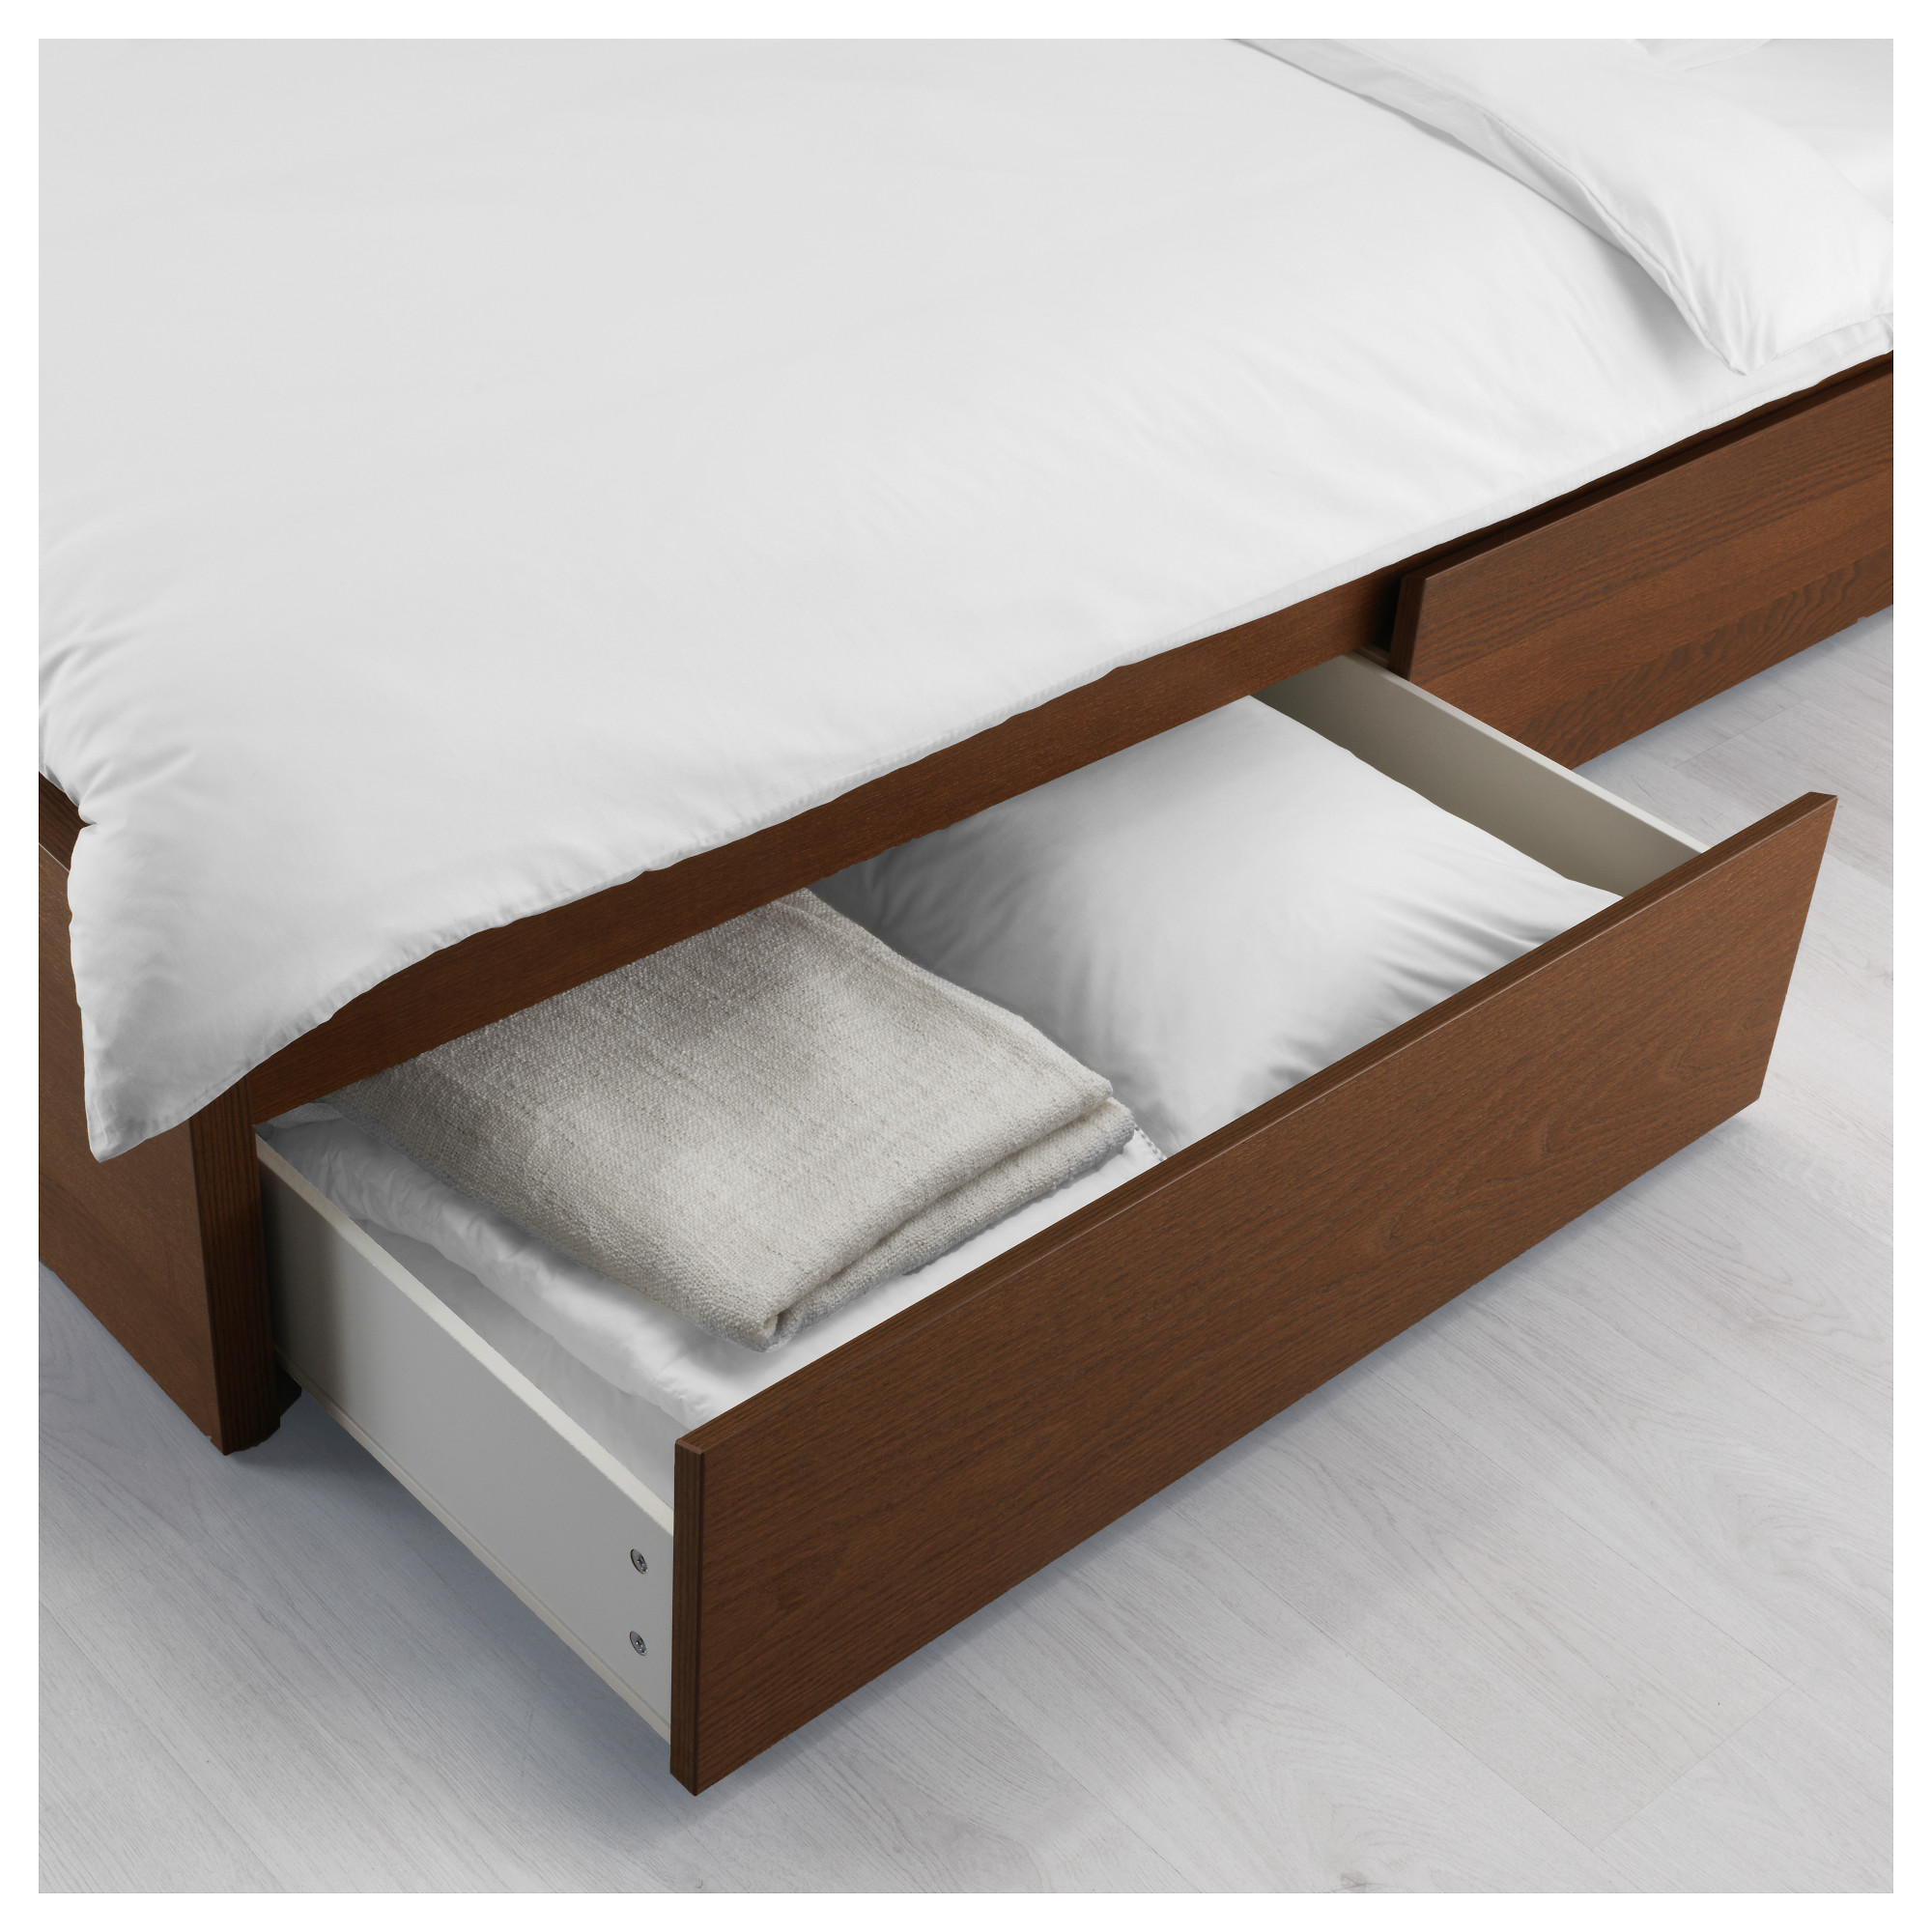 amazing Ikea Malm Bed Storage Part - 1: MALM Underbed storage box for high bed - black-brown,  Full-Double-Twin-Single - IKEA